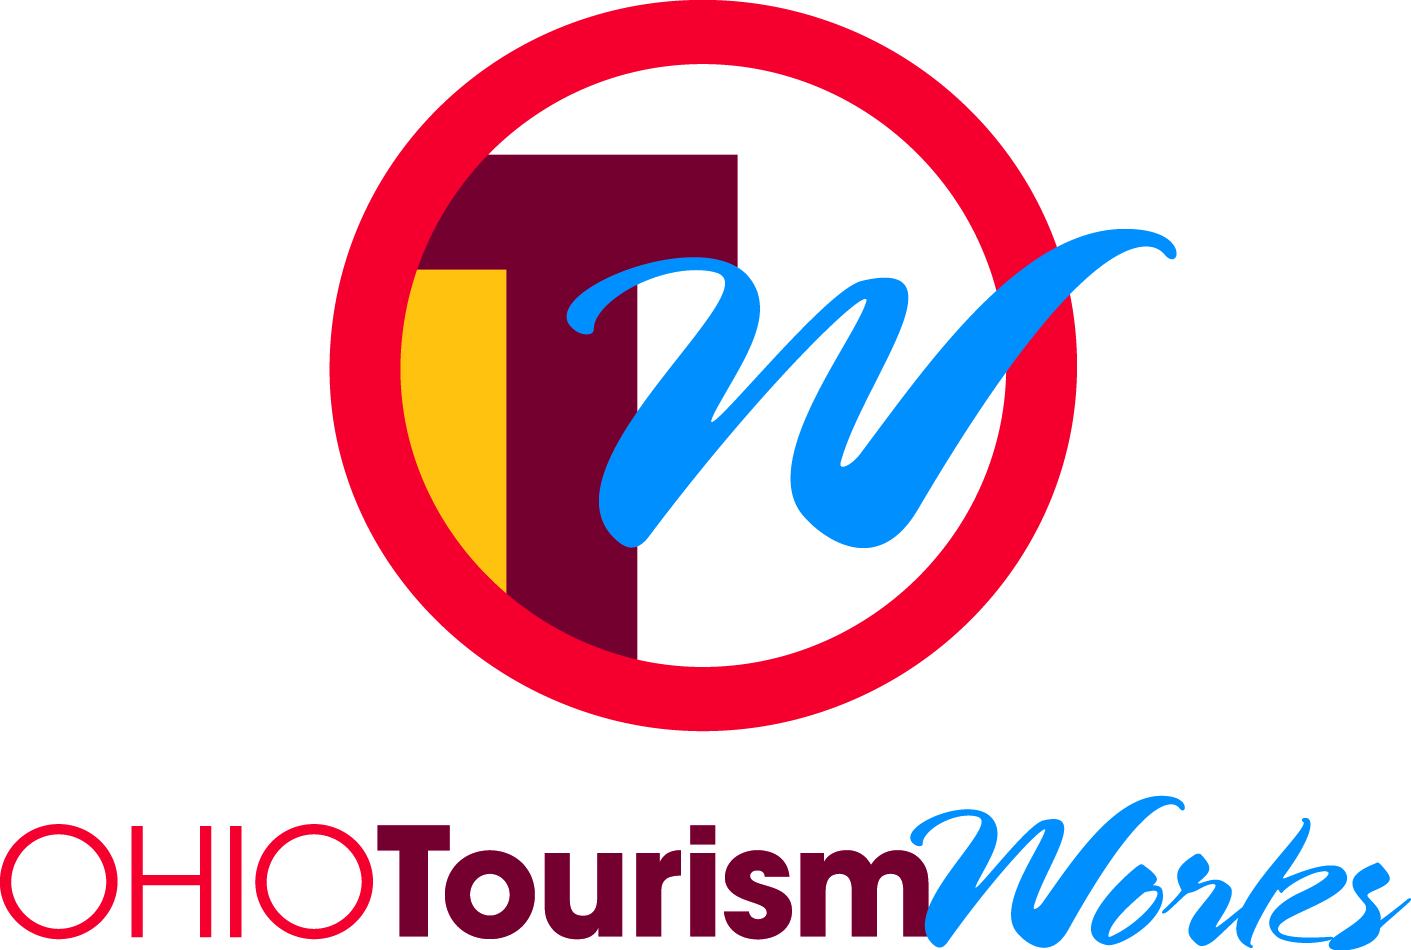 ohio dublin tourism boosted with new state model